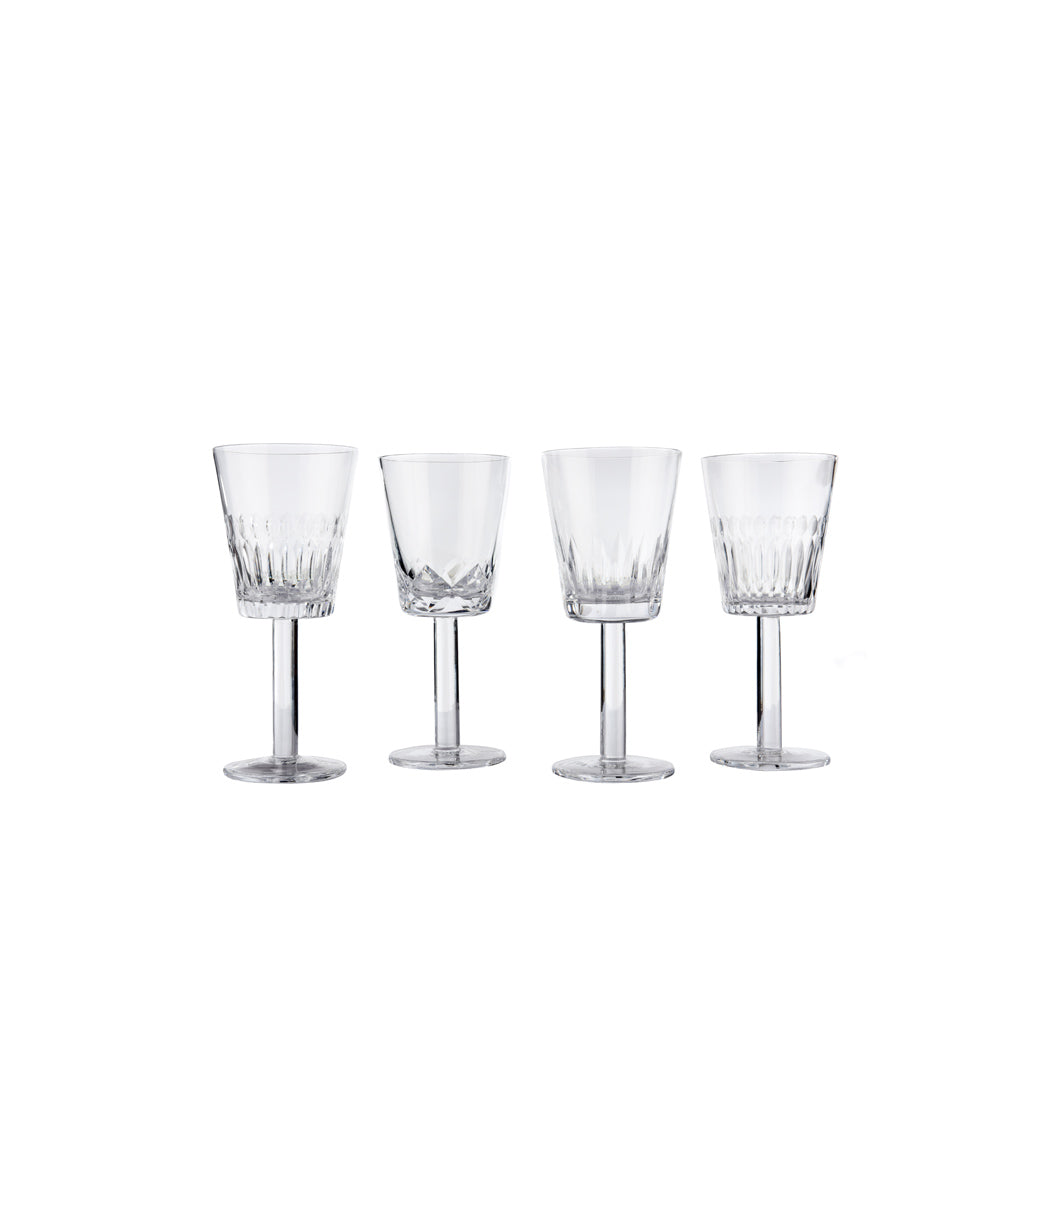 Tatra wine glass Set of 4